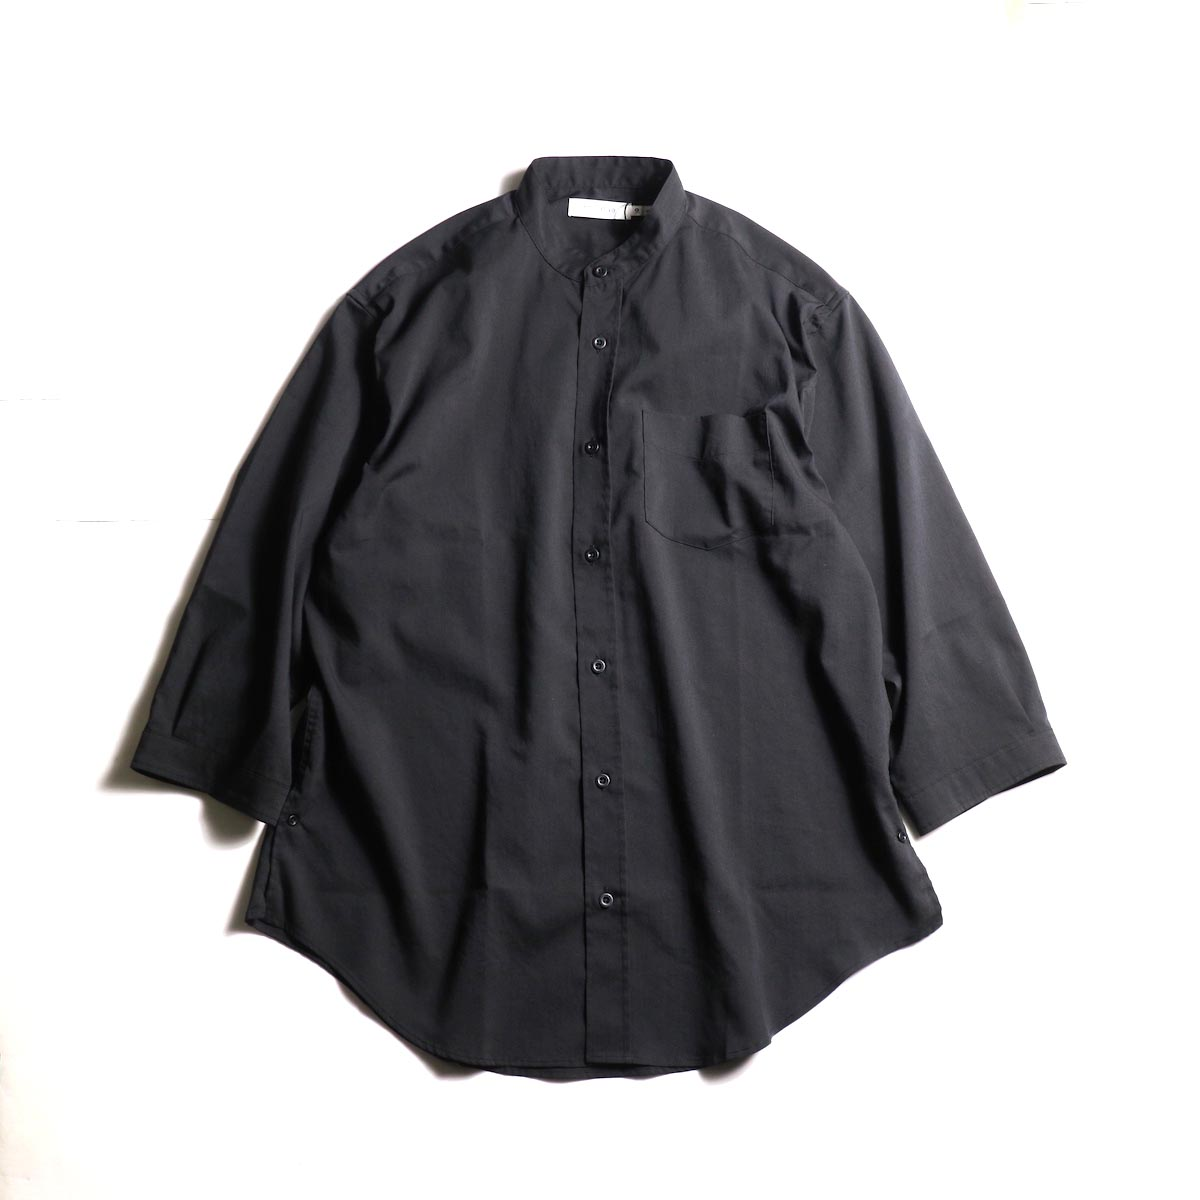 nonnative / OFFICER SHIRT Q/S RELAXED FIT P/L WEATHER STRETCH COOLMAX® (Black)正面